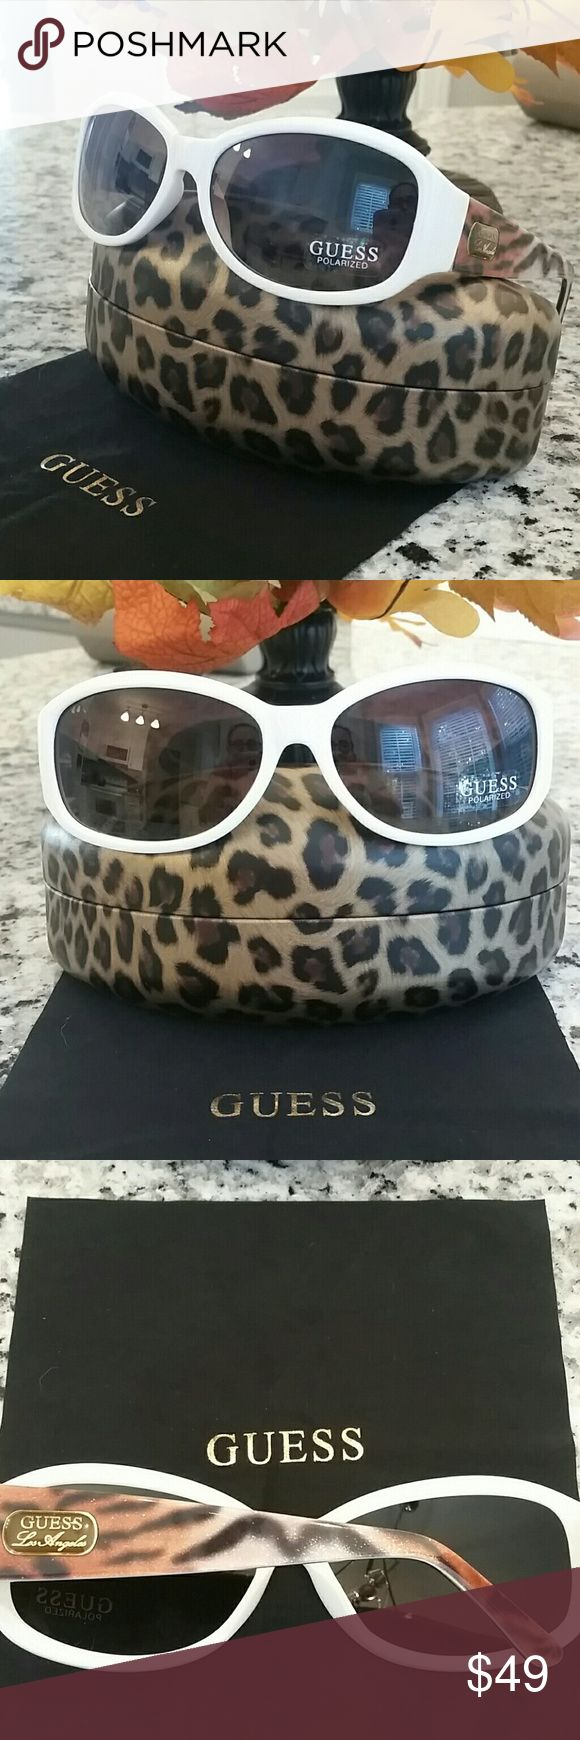 Guess white and tiger polarized sunglasses NWT Guess polarized sunglasses. Go Hollywood glam with these Los Angeles ladies' shades from the stylish Guess brand! The smooth white rectangle frame with tiger stripe arms in glittering finish create an ultra fabulous accessory that will enhance any outfit! Guess Accessories Sunglasses